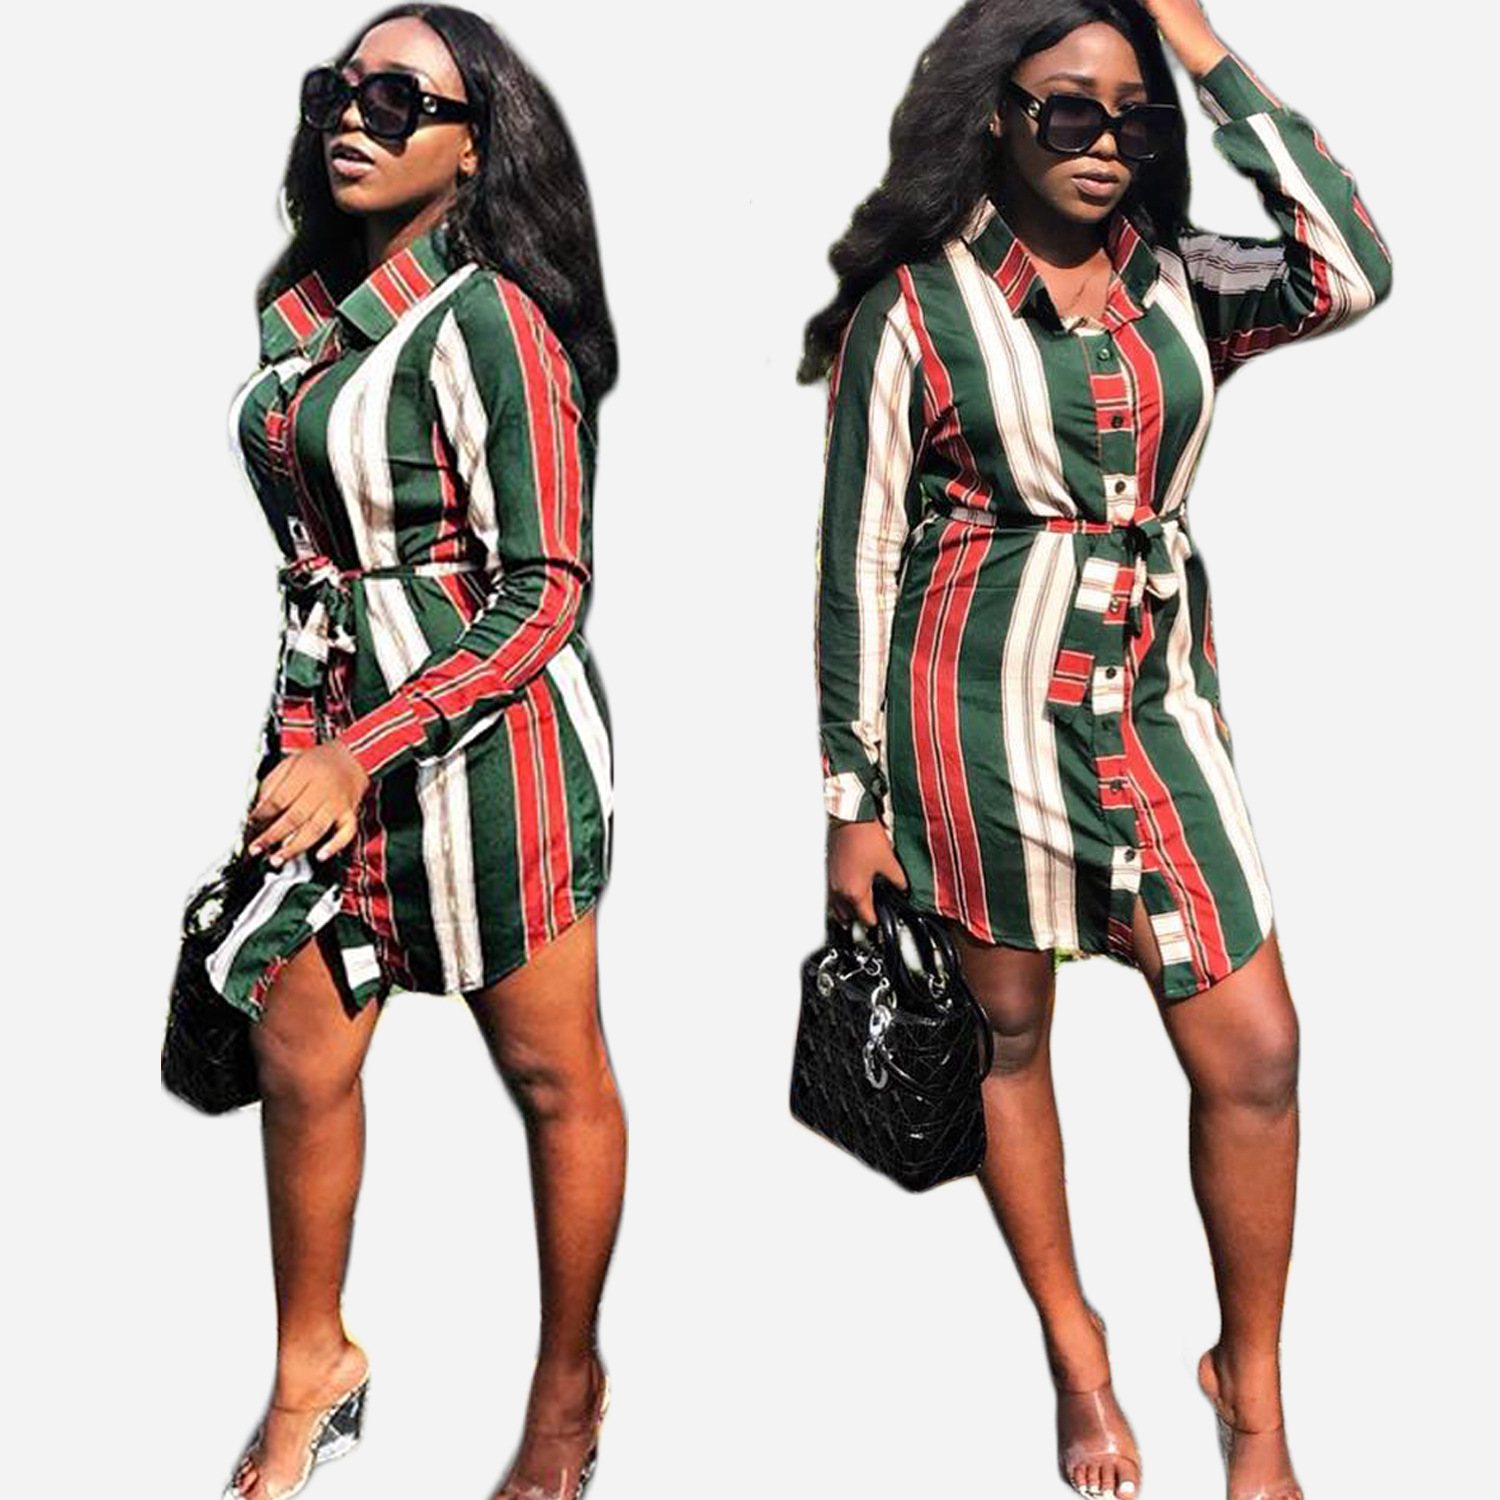 Spring 2019 new style, fashionable African long shirt with stripes, single buckle belt,